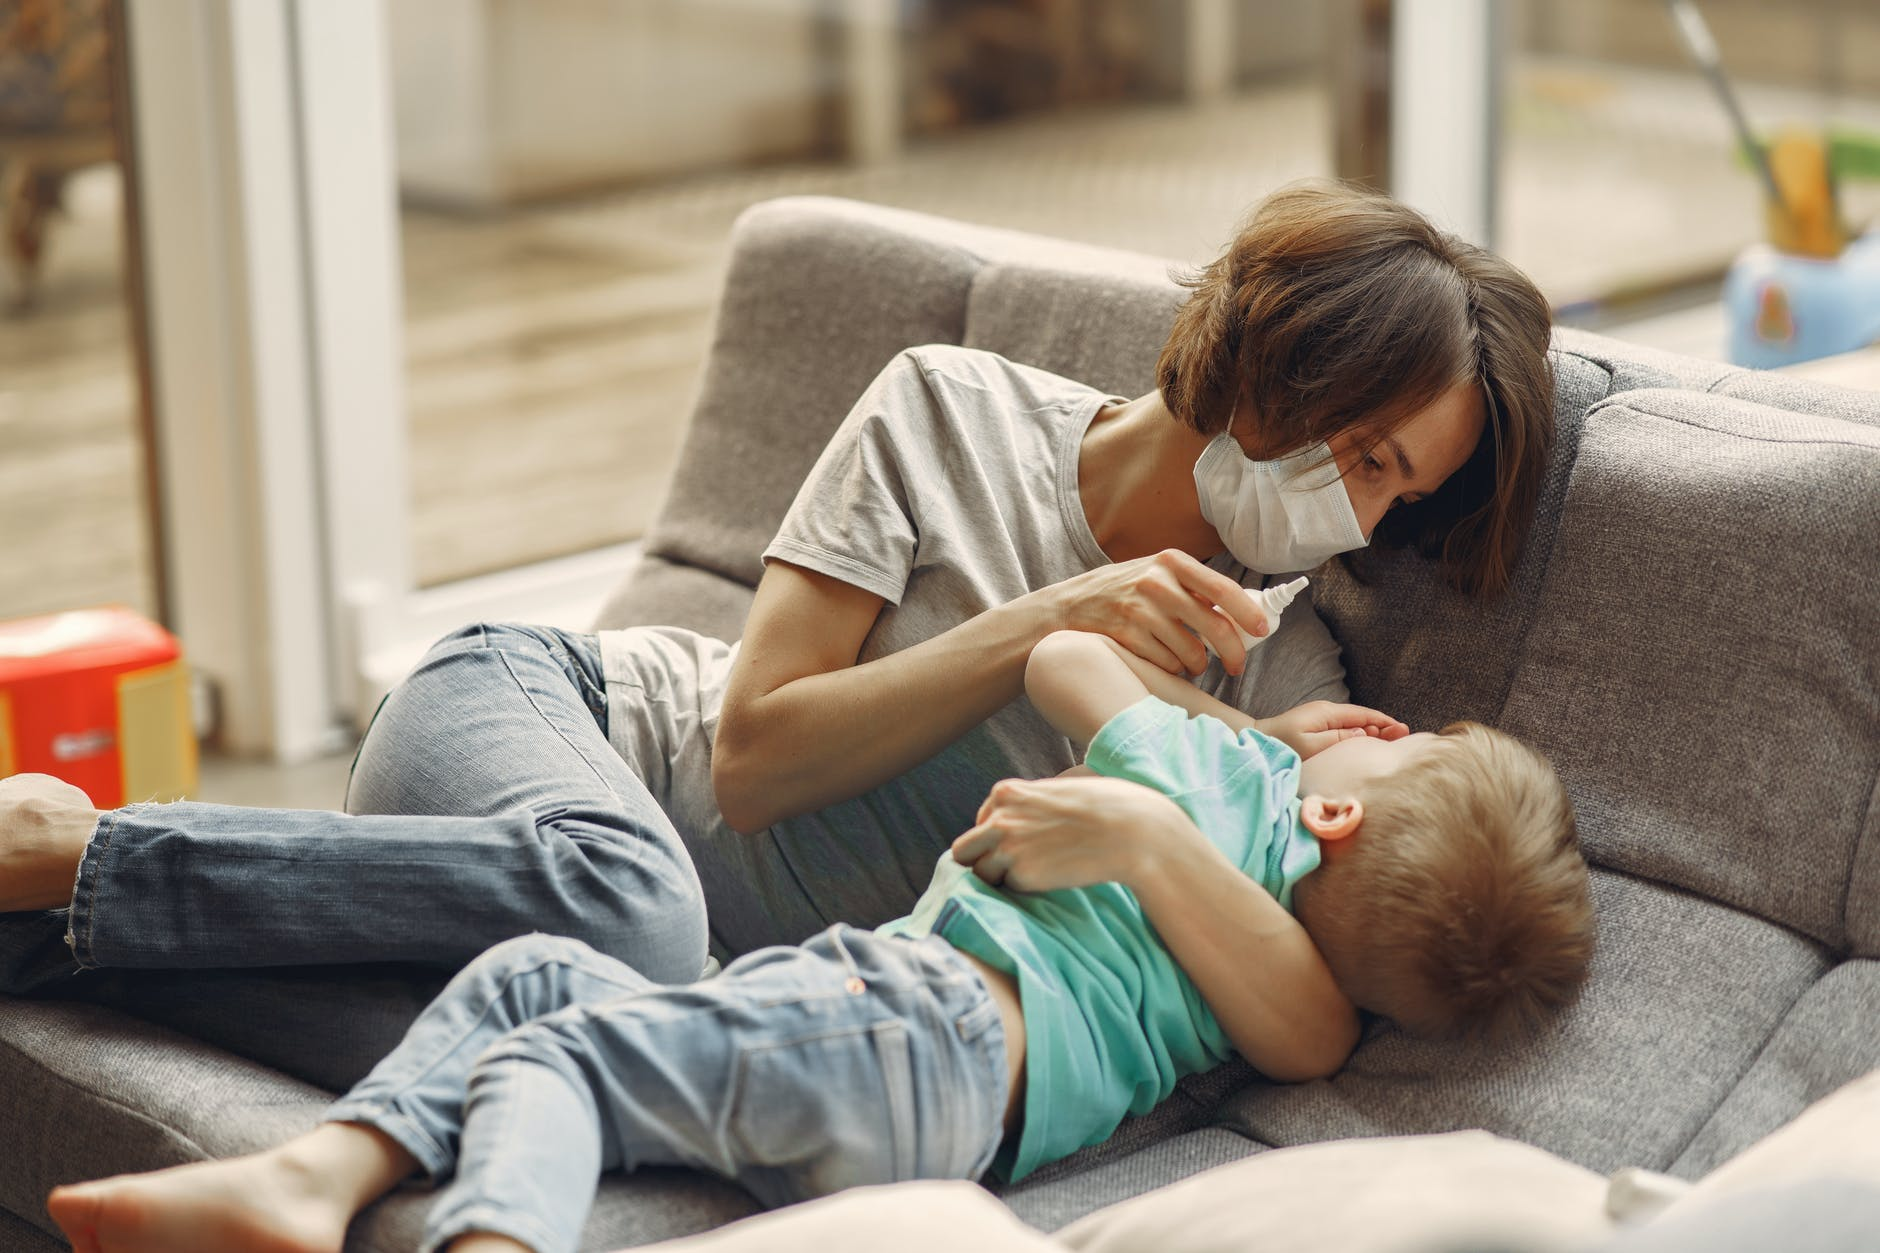 How to Celebrate Mother's Day During the Pandemic